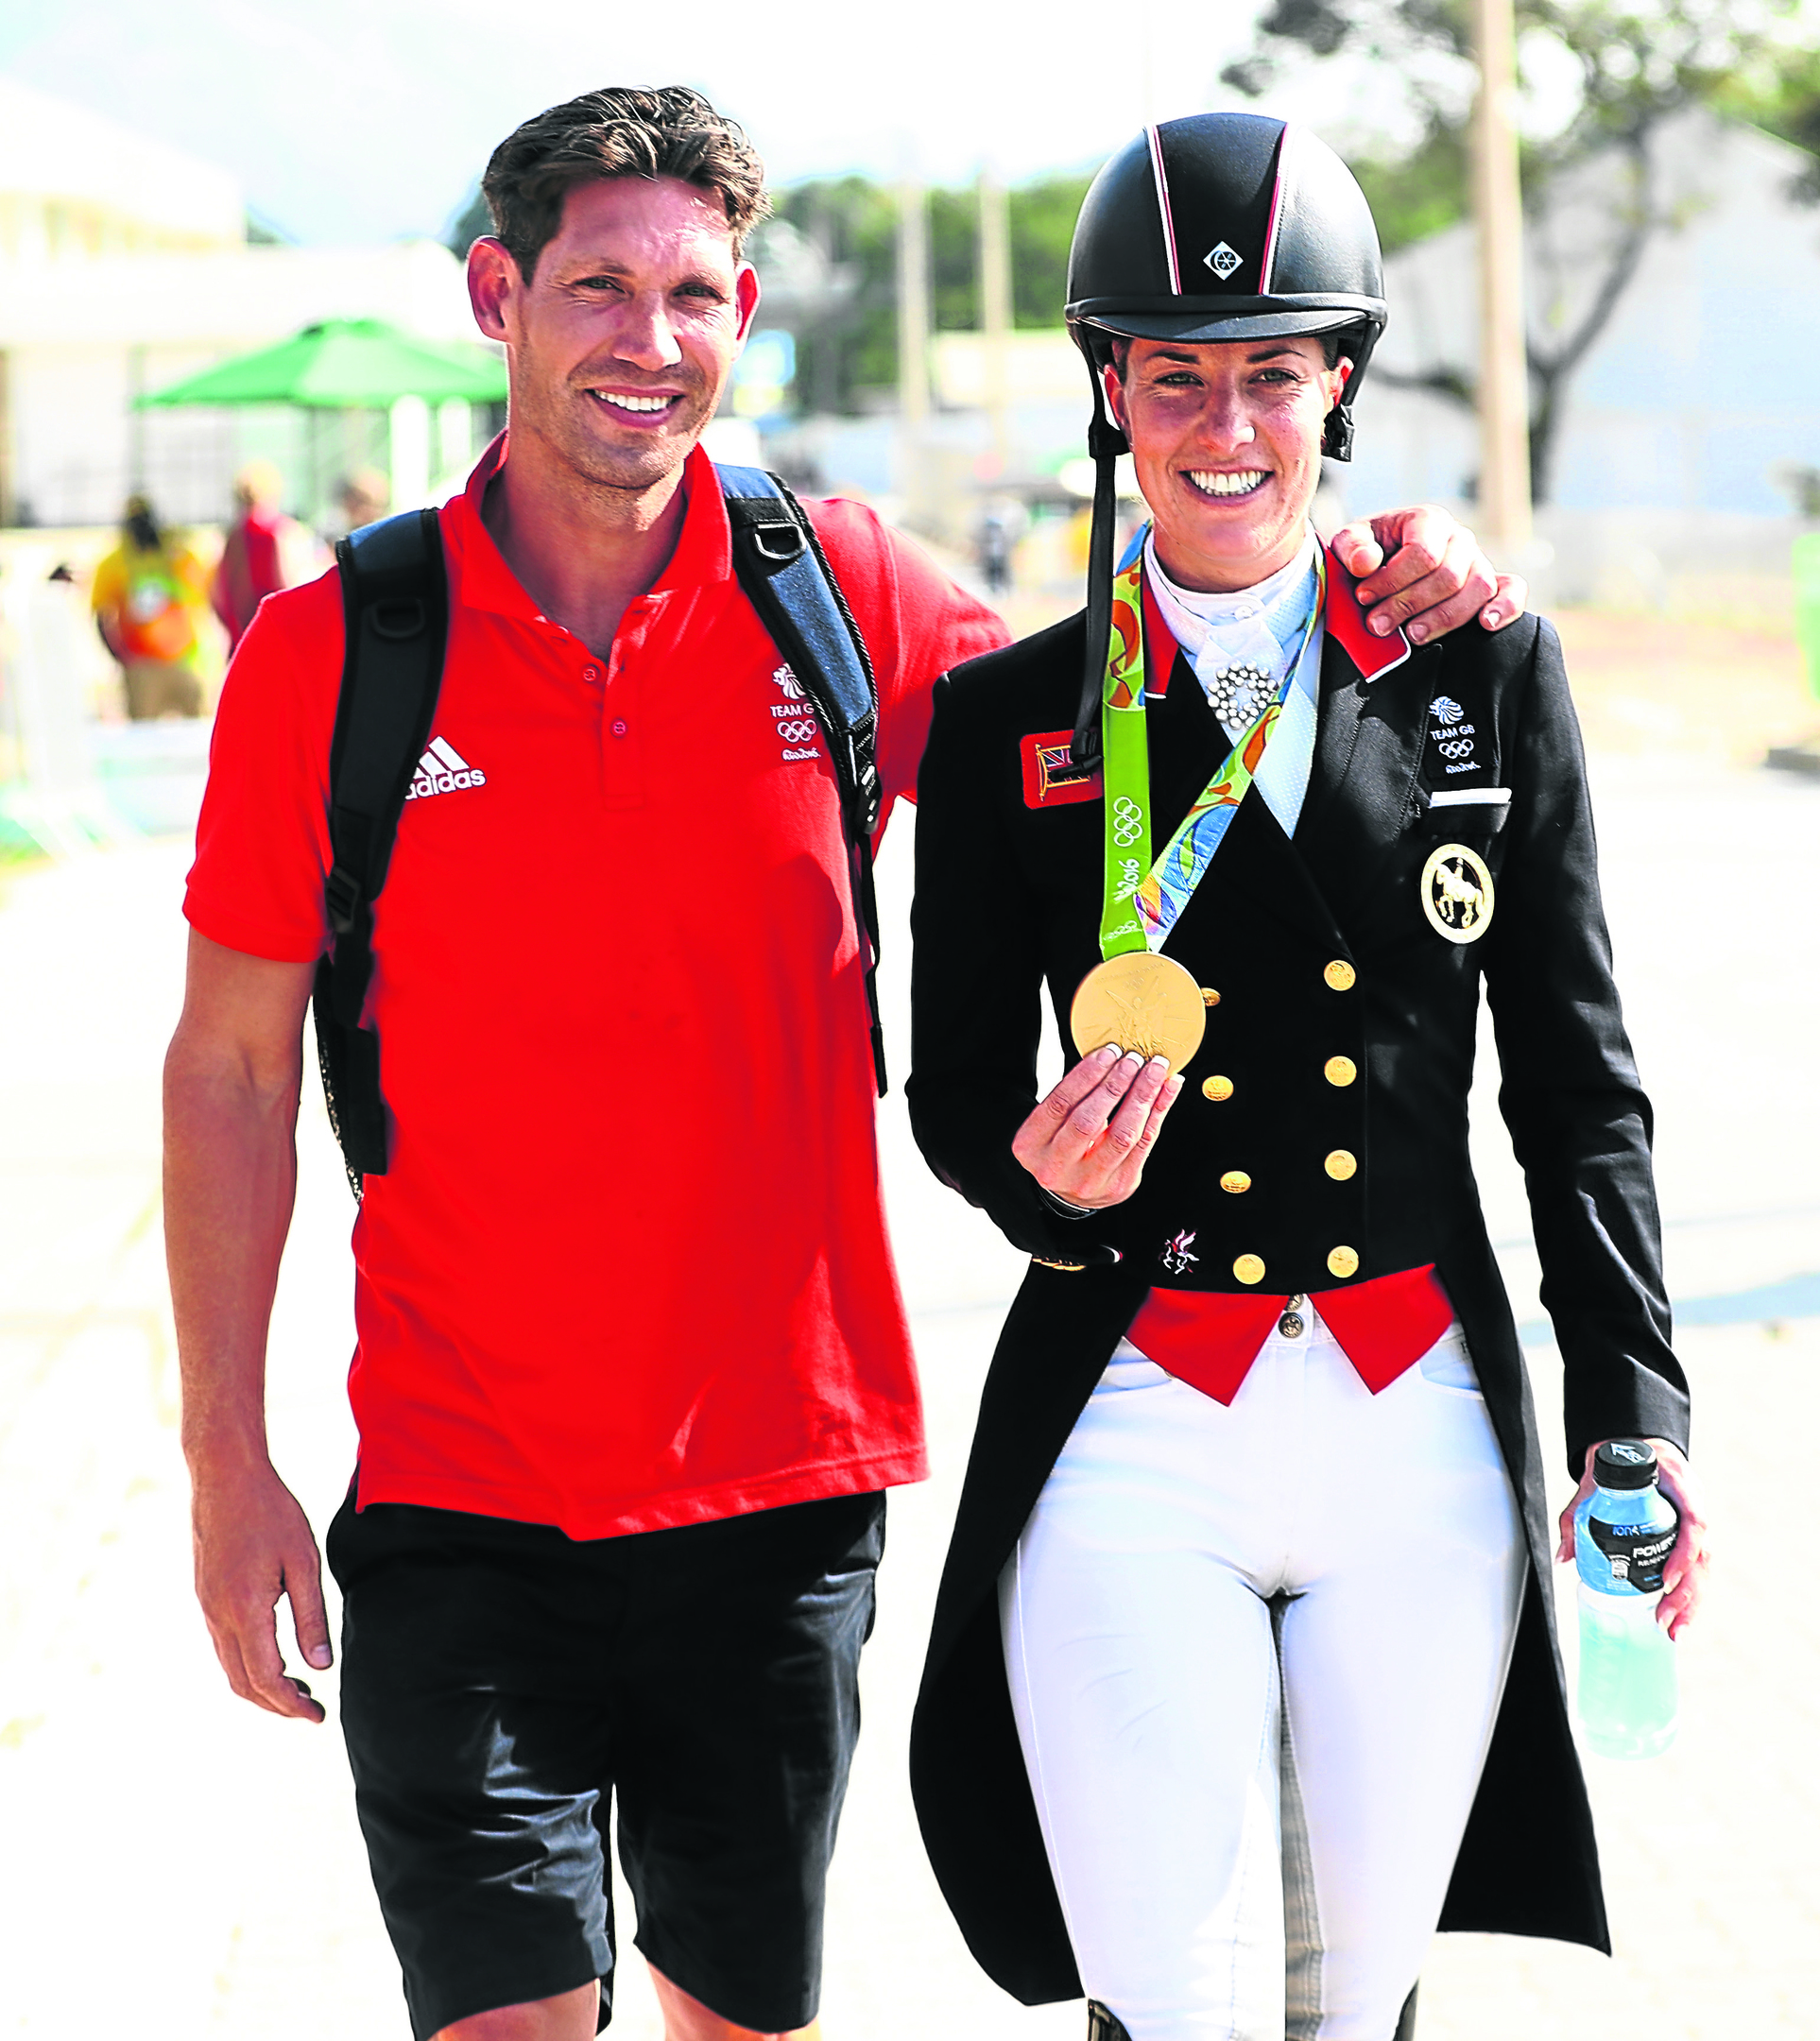 Charlotte Dujardin of Great Britain walks with her fiance, Dean Wyatt Golding after winning the gold medal during the Dressage Individual Grand Prix Freestyle (Photo by David Rogers/Getty Images)